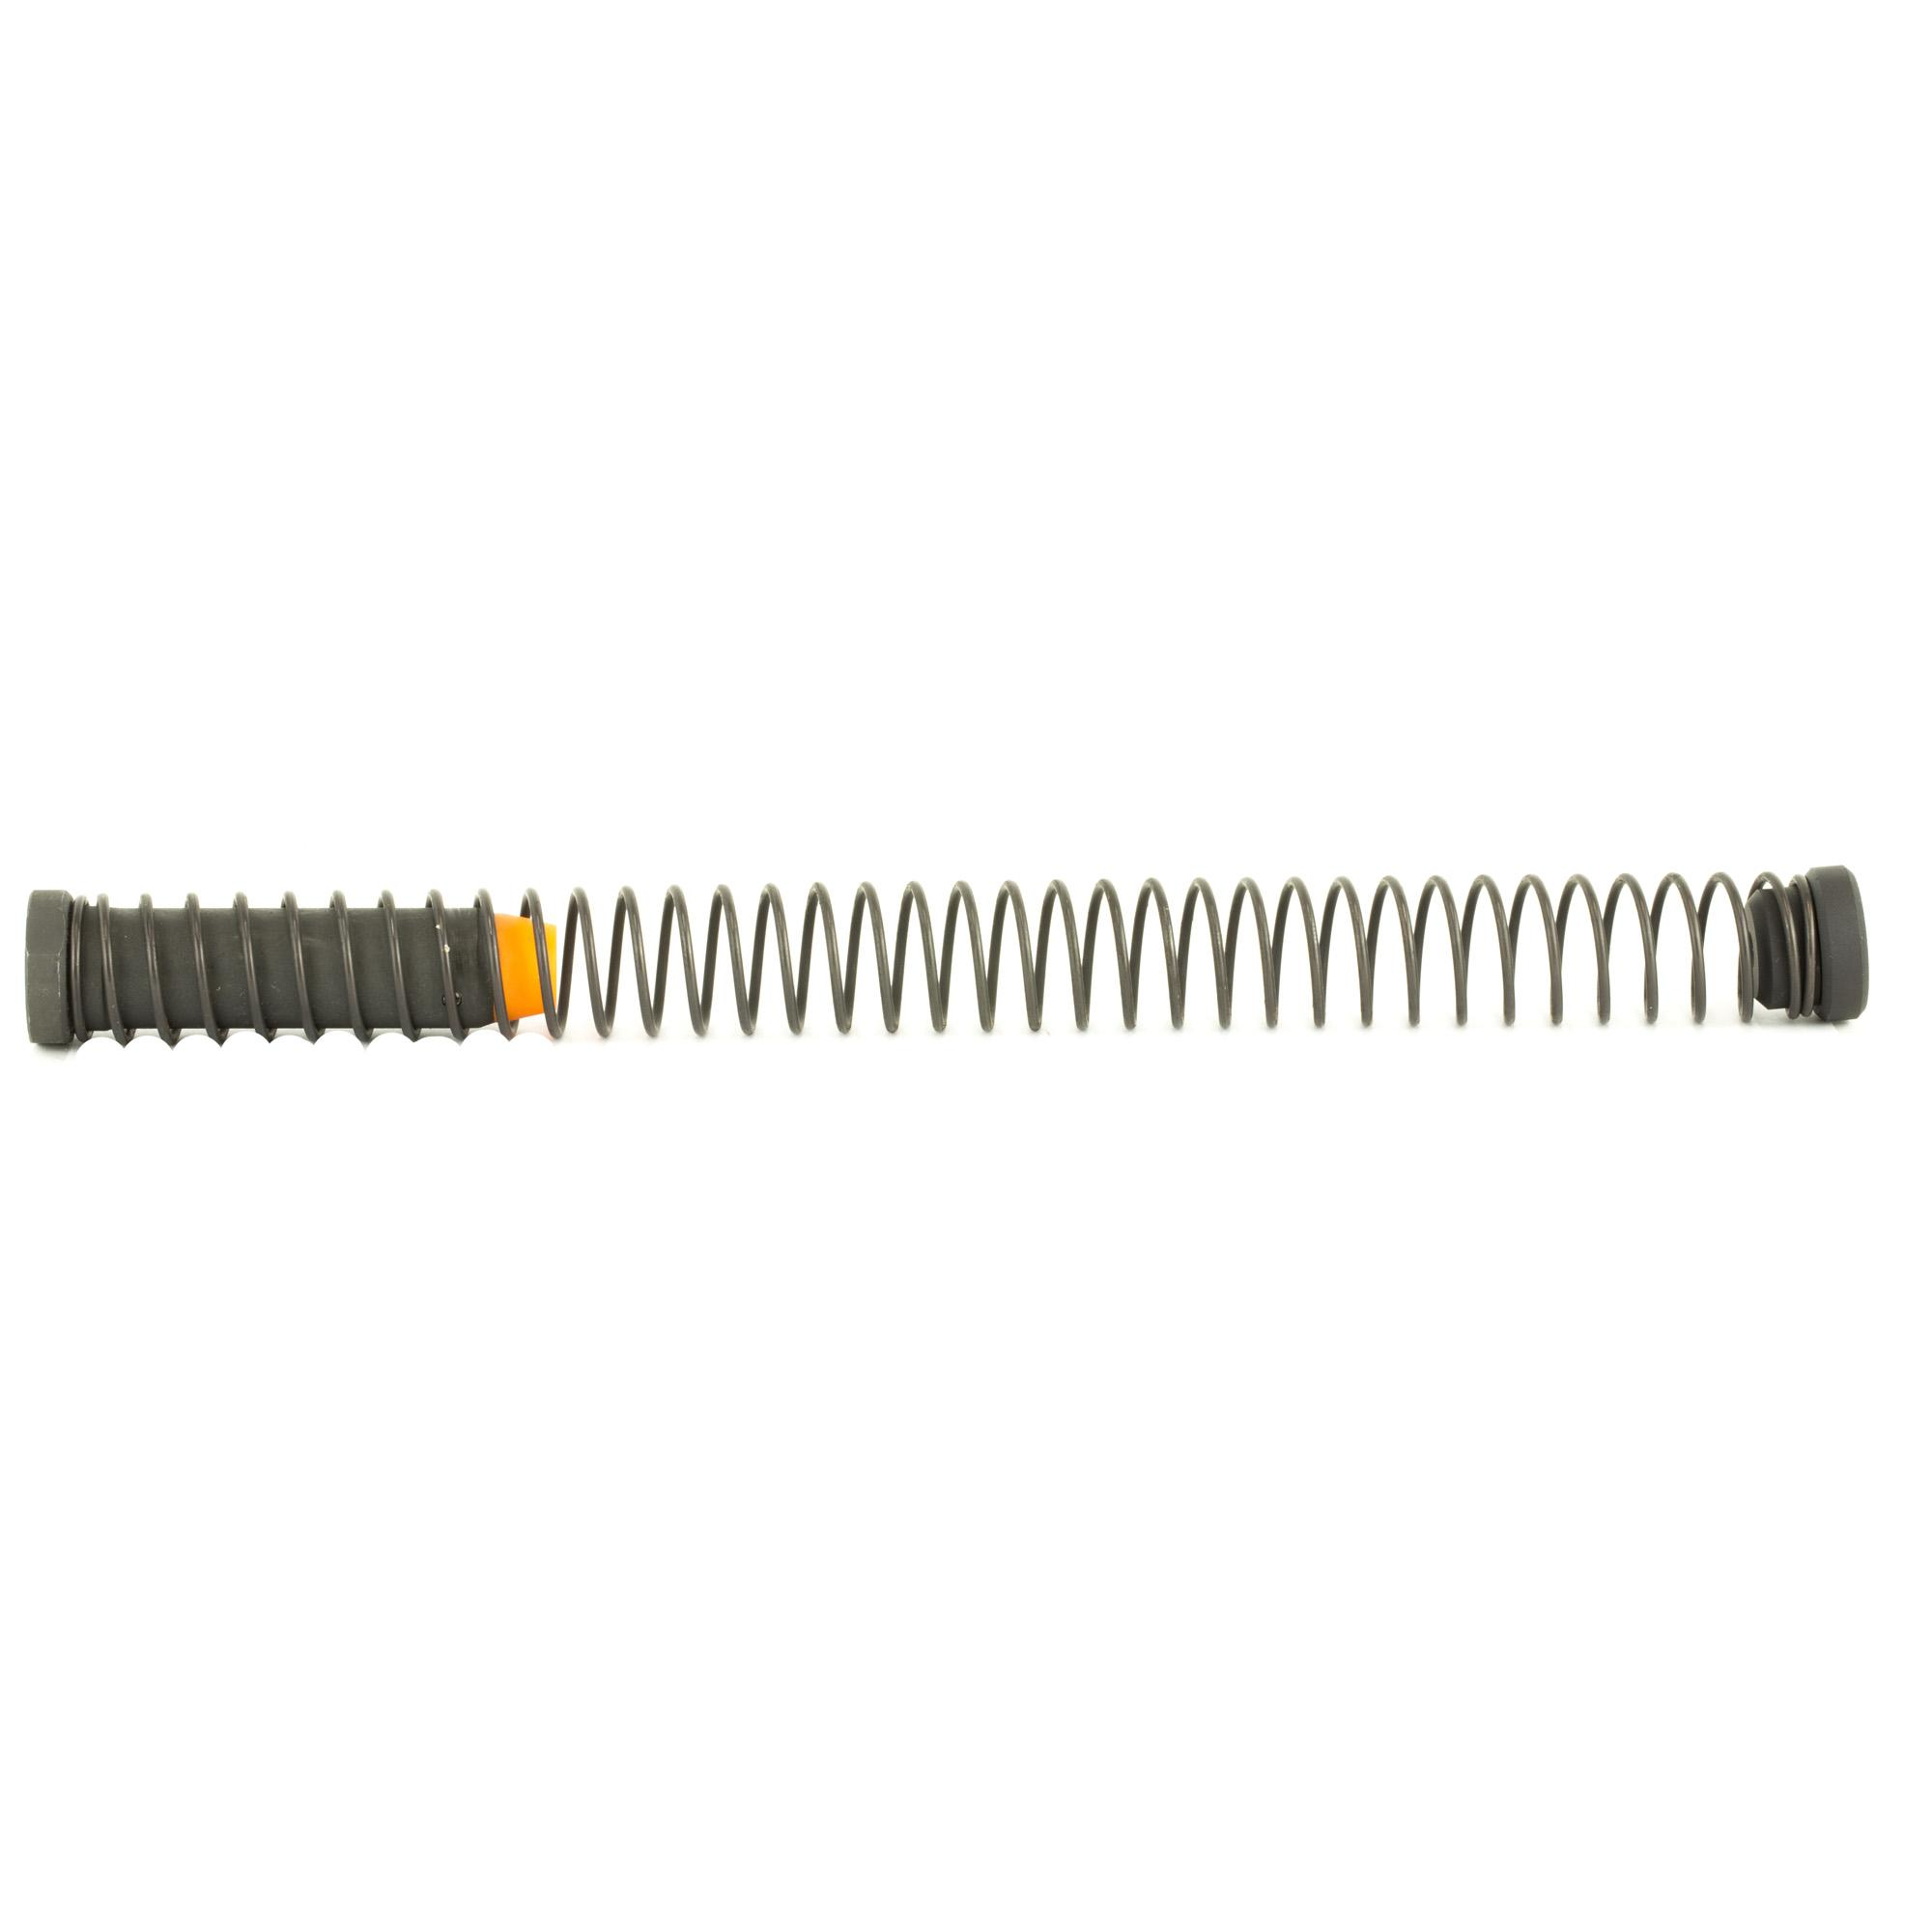 Angstadt Arms Angstadt Arms 9mm Buffer Kit Black